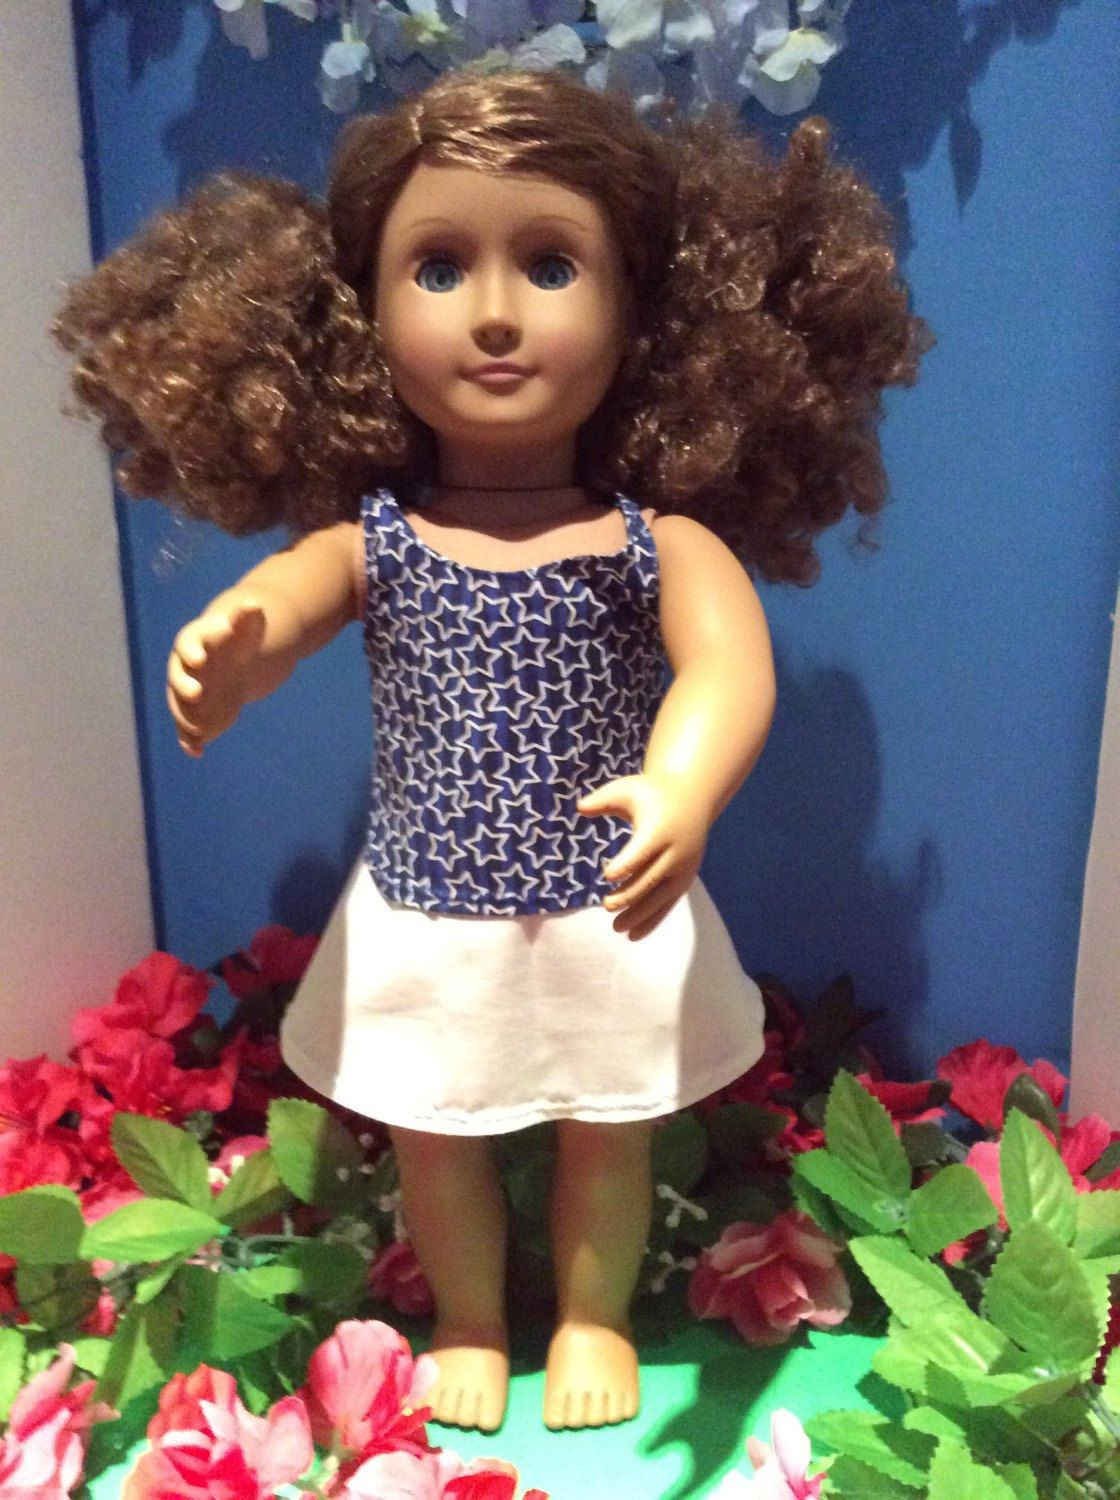 Tank Top With Skirt, 18 Inch Doll Clothes , Handmade , Fits All  18 Inch Dolls Color : Blue with stars and white skirt by BlueCowDesigns on Etsy